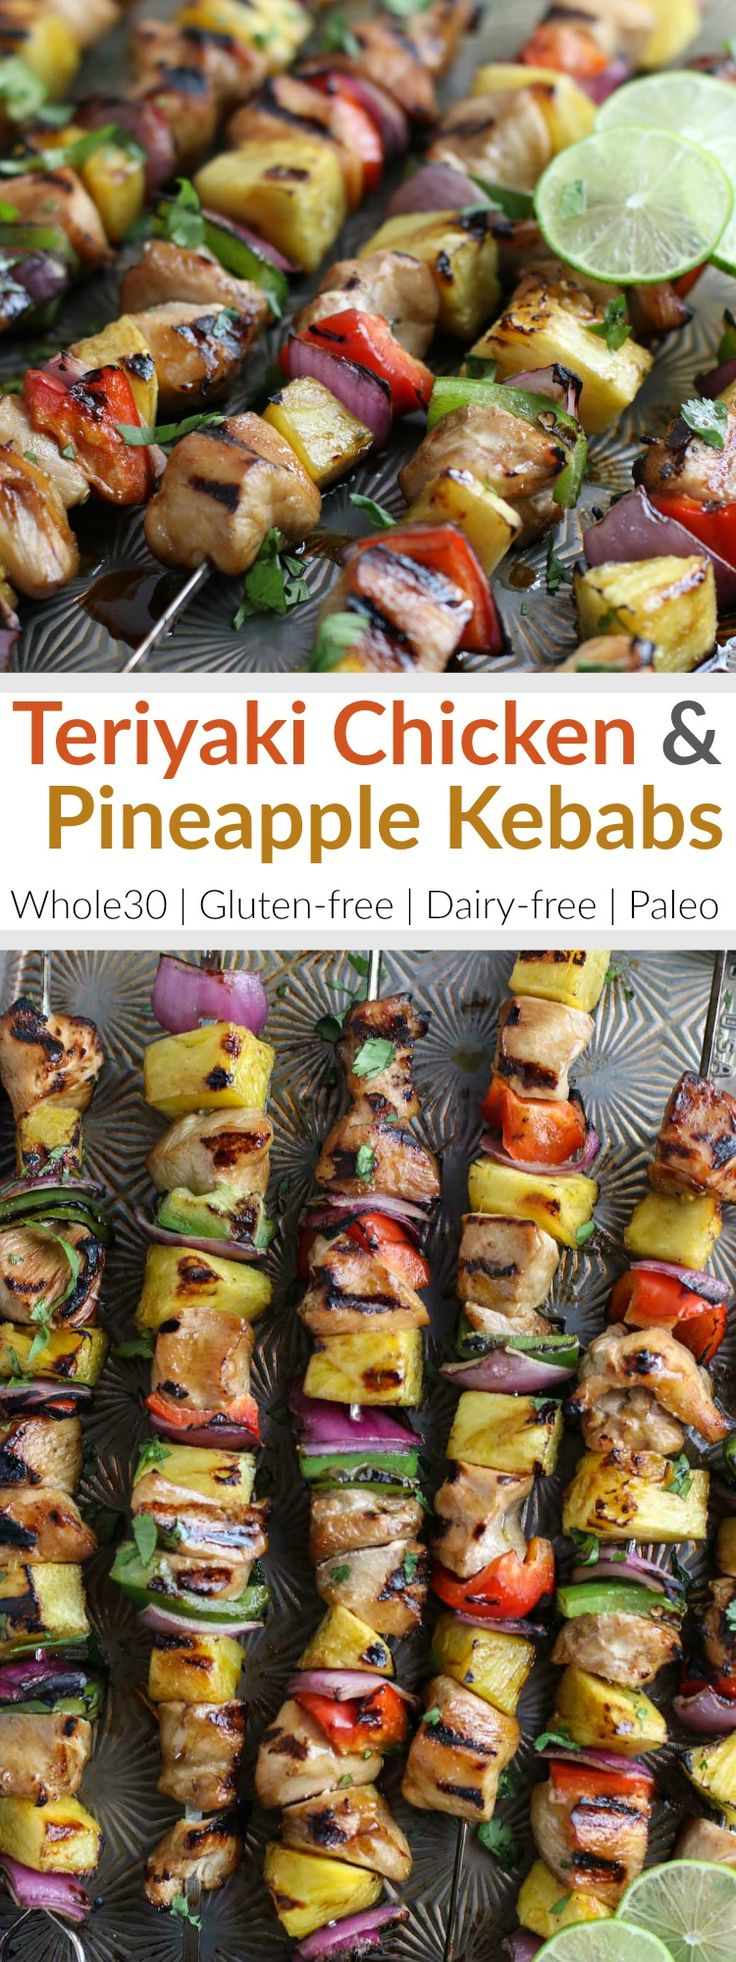 Embrace the summer grilling vibes with these Whole30-friendly Teriyaki Chicken and Pineapple Kebabs! | The Real Food Dietitians | http://therealfoodrds.com/teriyaki-chicken-and-pineapple-kebabs/